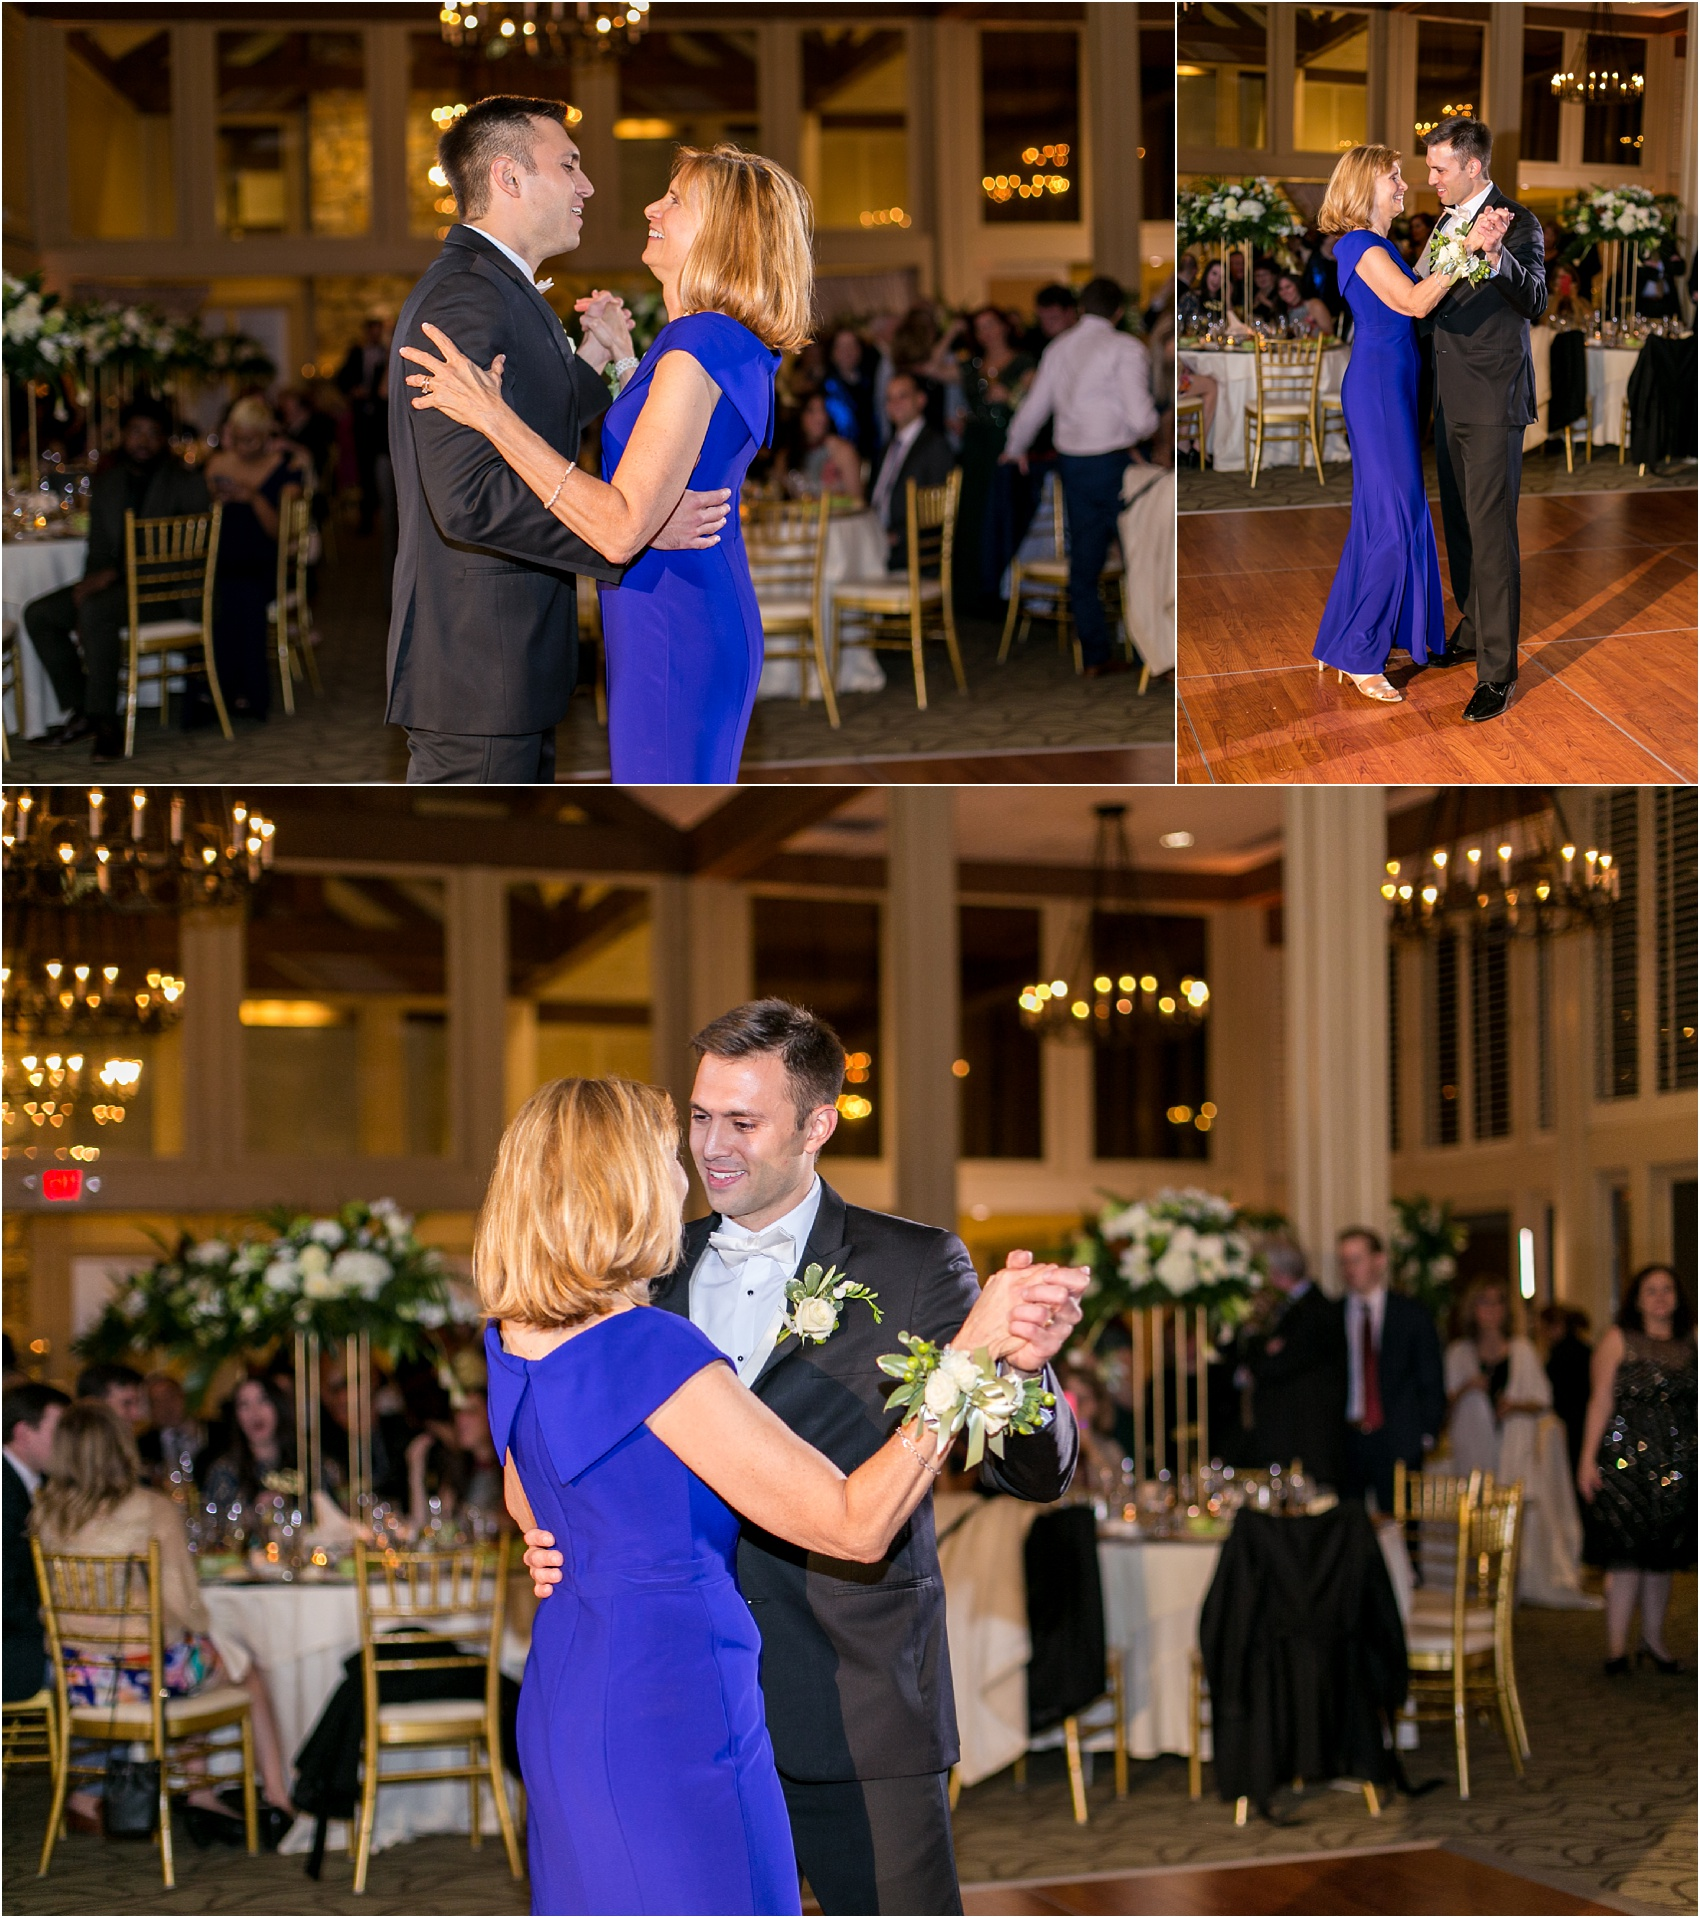 Savannah Eve Photography- Bottiglion-Scope Wedding- Sneak Peek-82.jpg